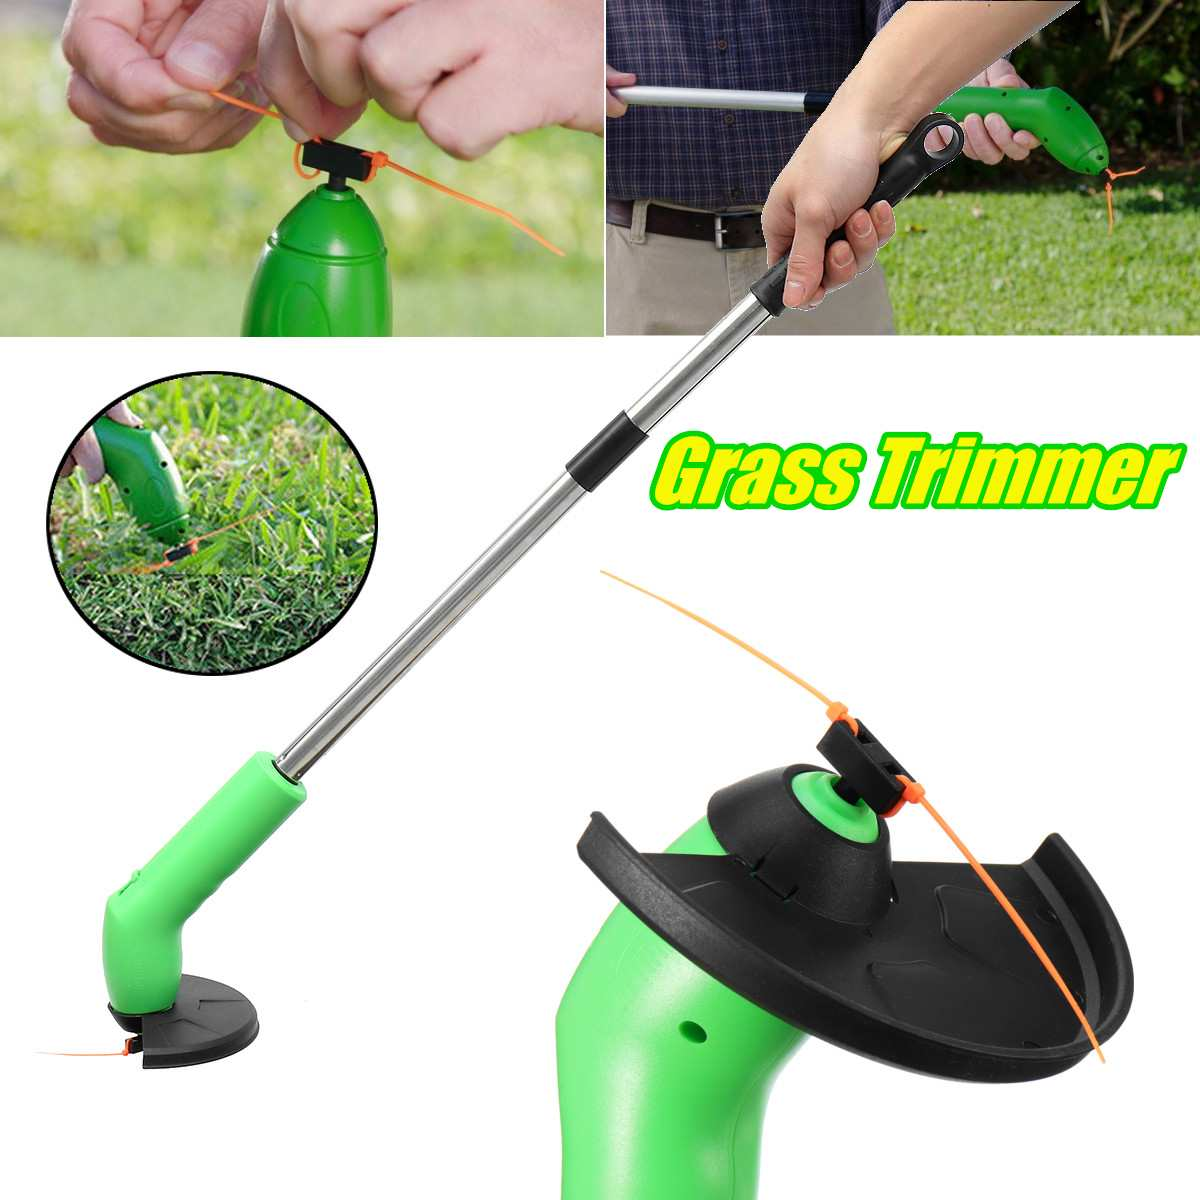 Retractable Grass Trimmer Cutter Lawn Mower Cordless Lawnmower Garden WeedRemover Edging Ties Portable Garden Power Tools